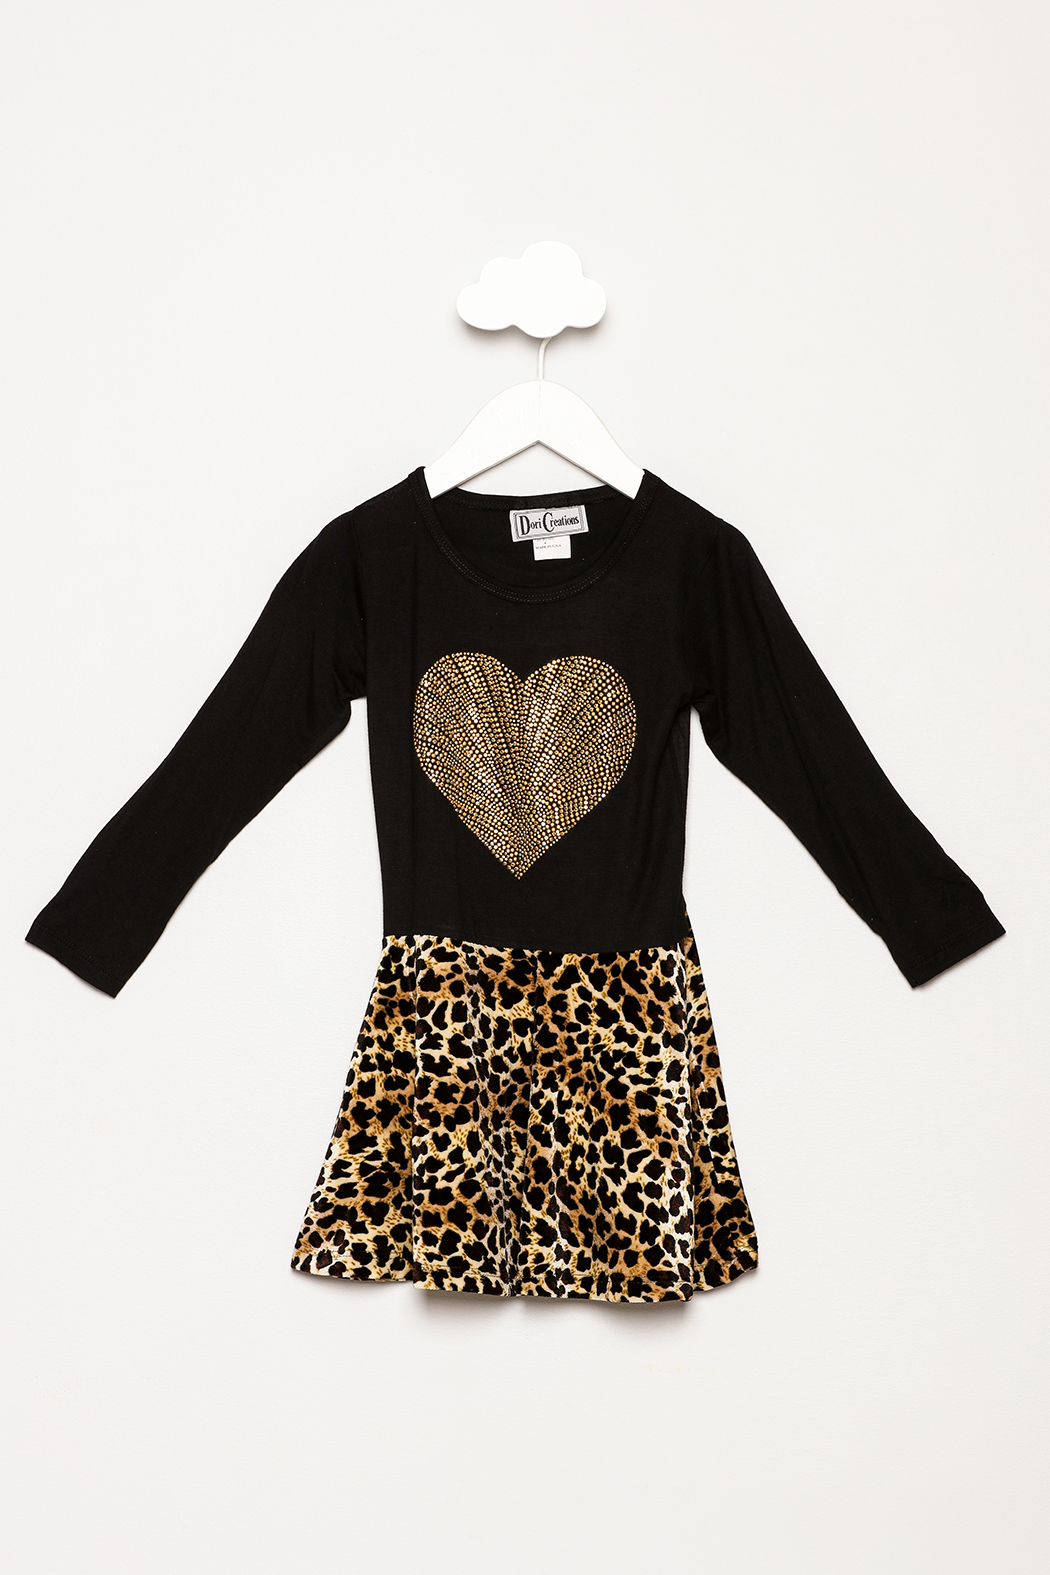 Dori Creations Heart Leopard Print Dress - Front Cropped Image